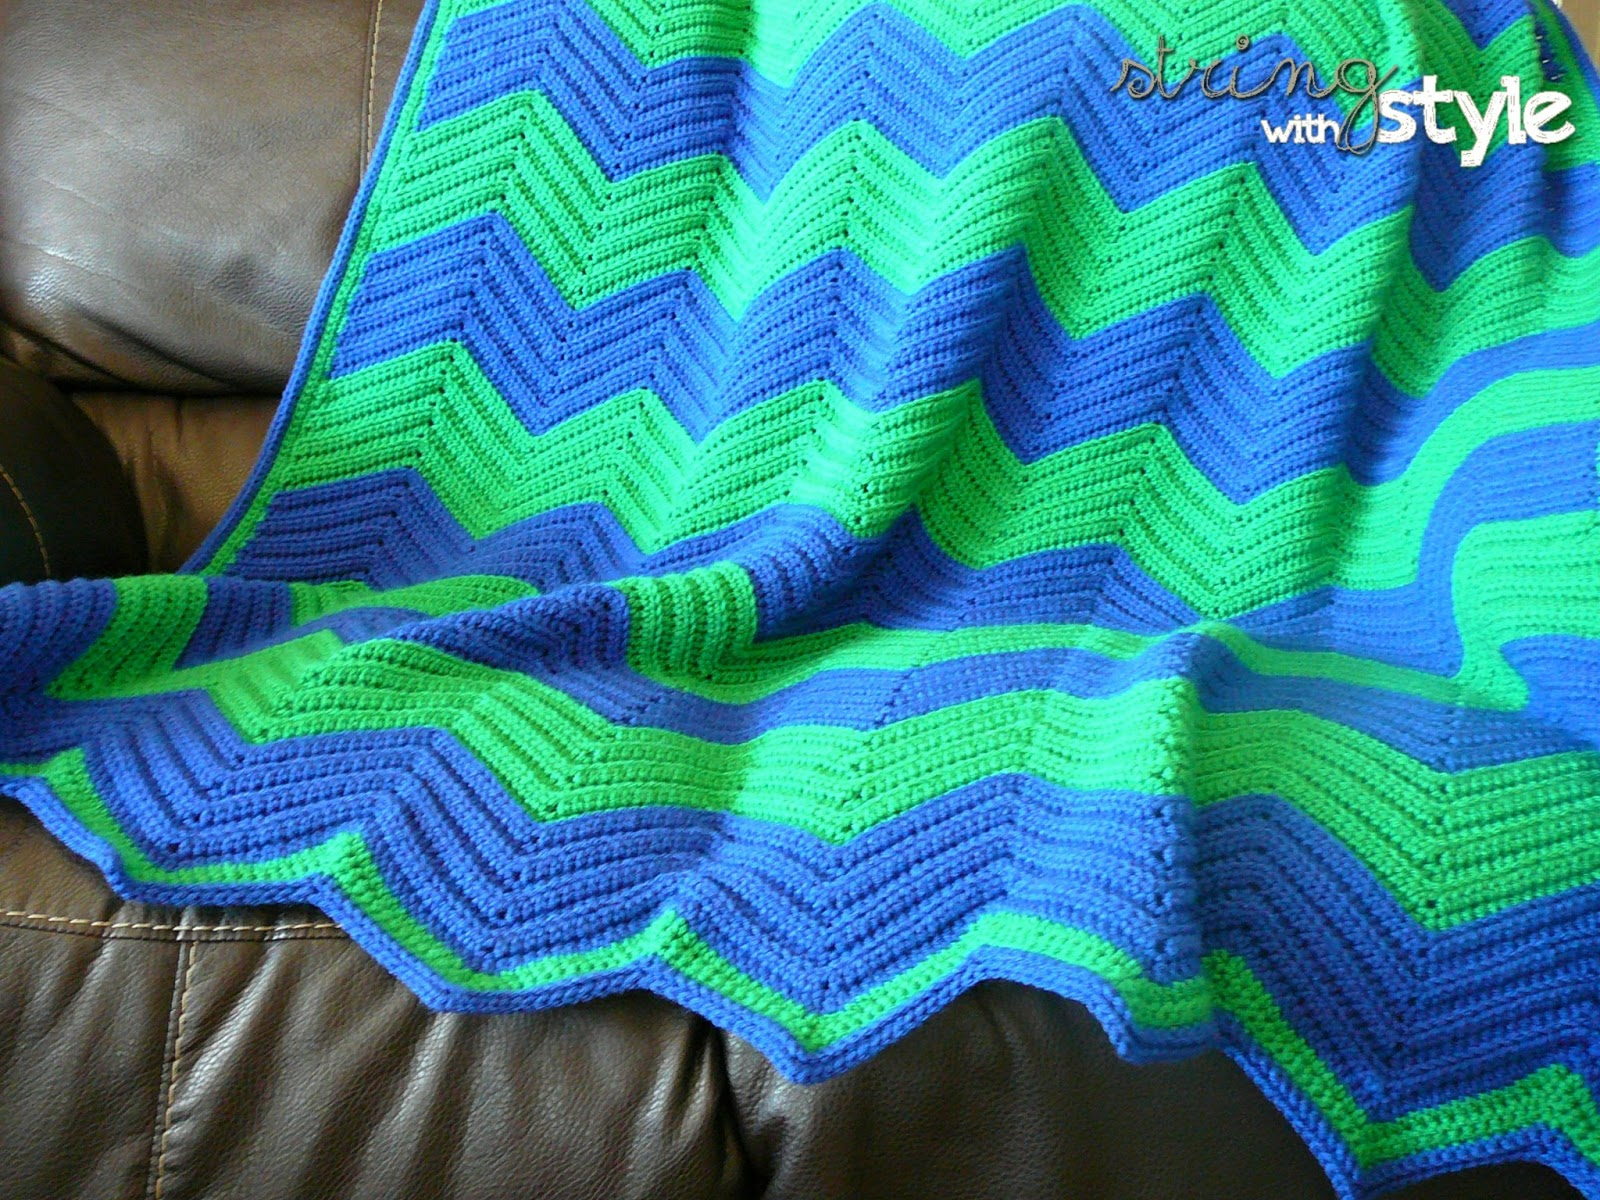 Crochet Stitches Chevron : String With Style: Chevron Love Afghan